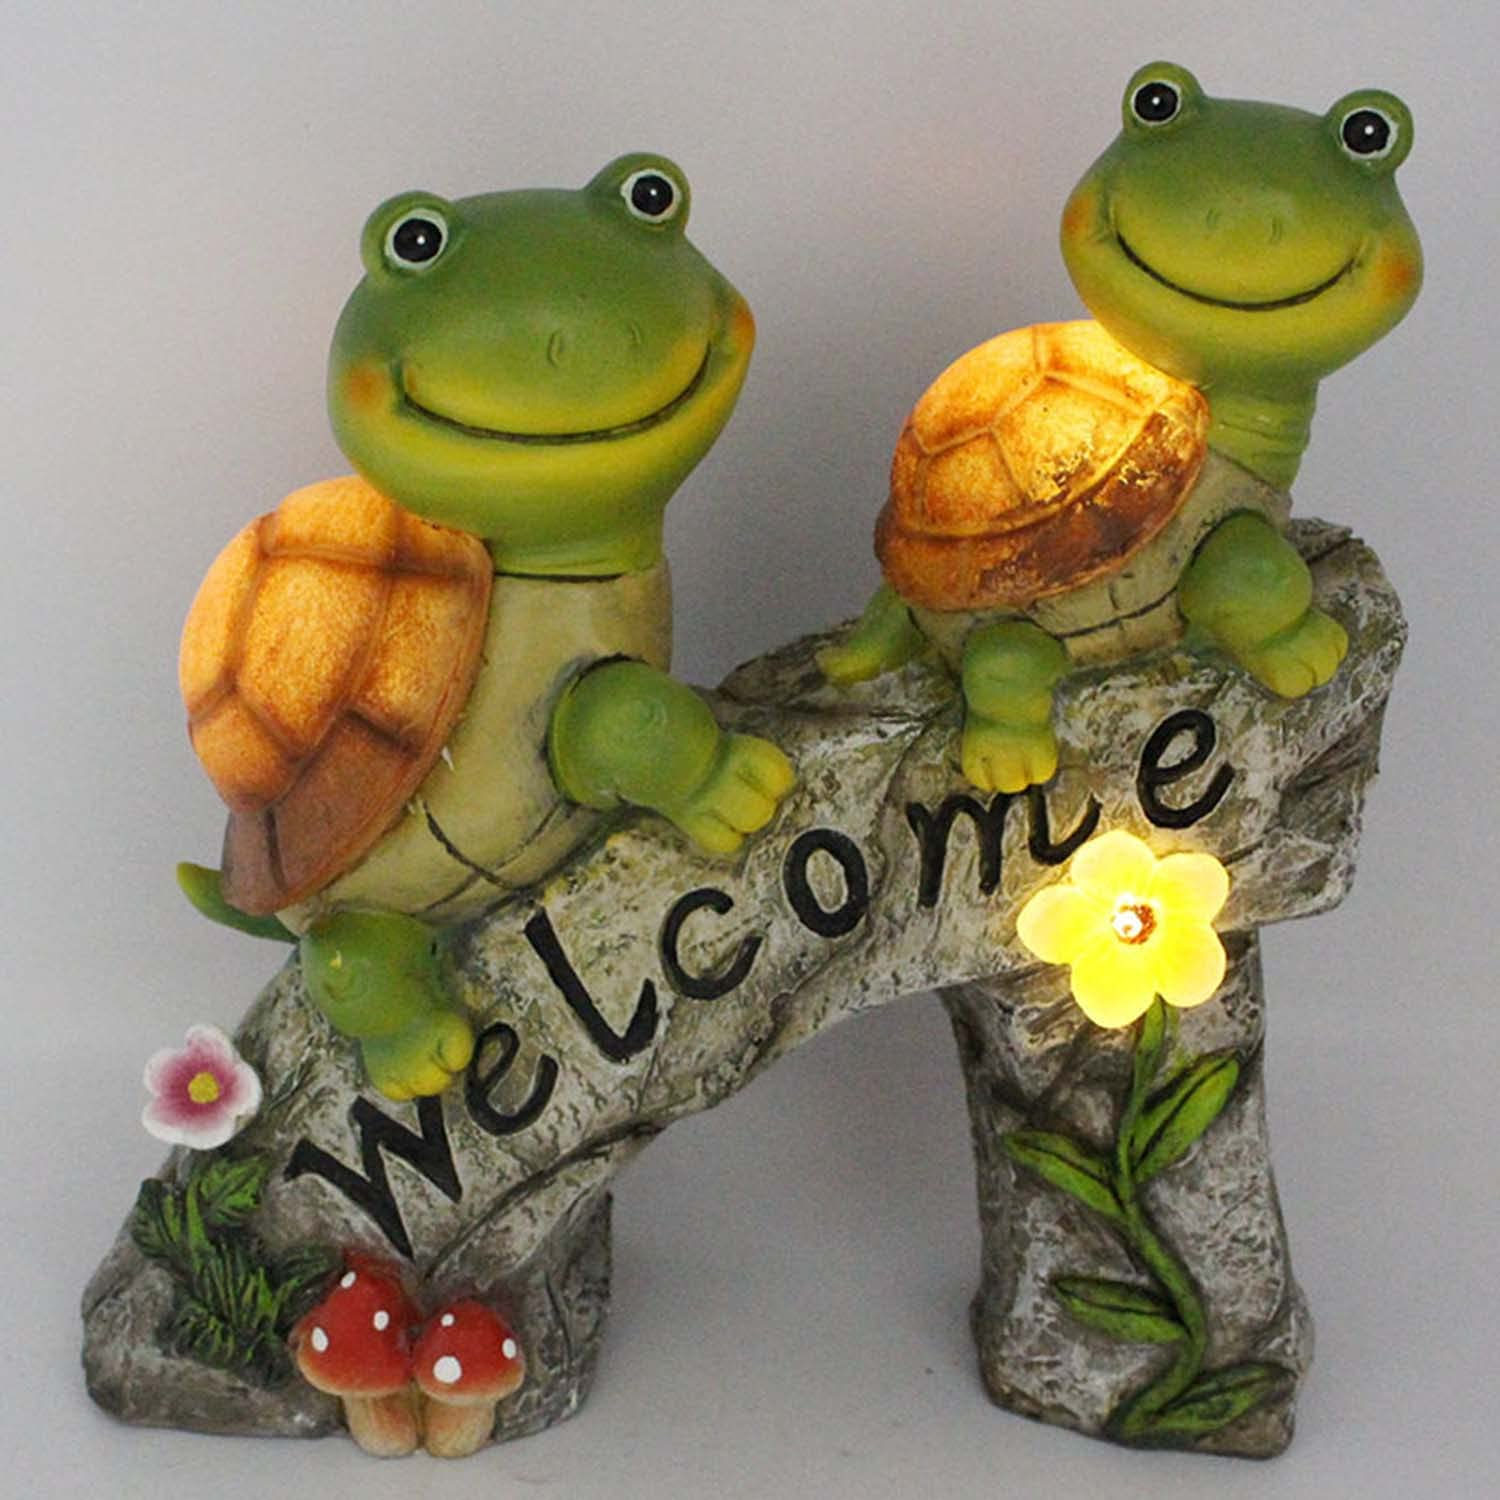 Garden Decor Statue Turtle Figurines Backyard Solar Lights Frog Face Turtles Resin Outdoor Statues Squirrel Figurines Lawn Decor with 4 LED for Patio, Yard, Housewarming, Thanksgiving (Rock Tortoise)